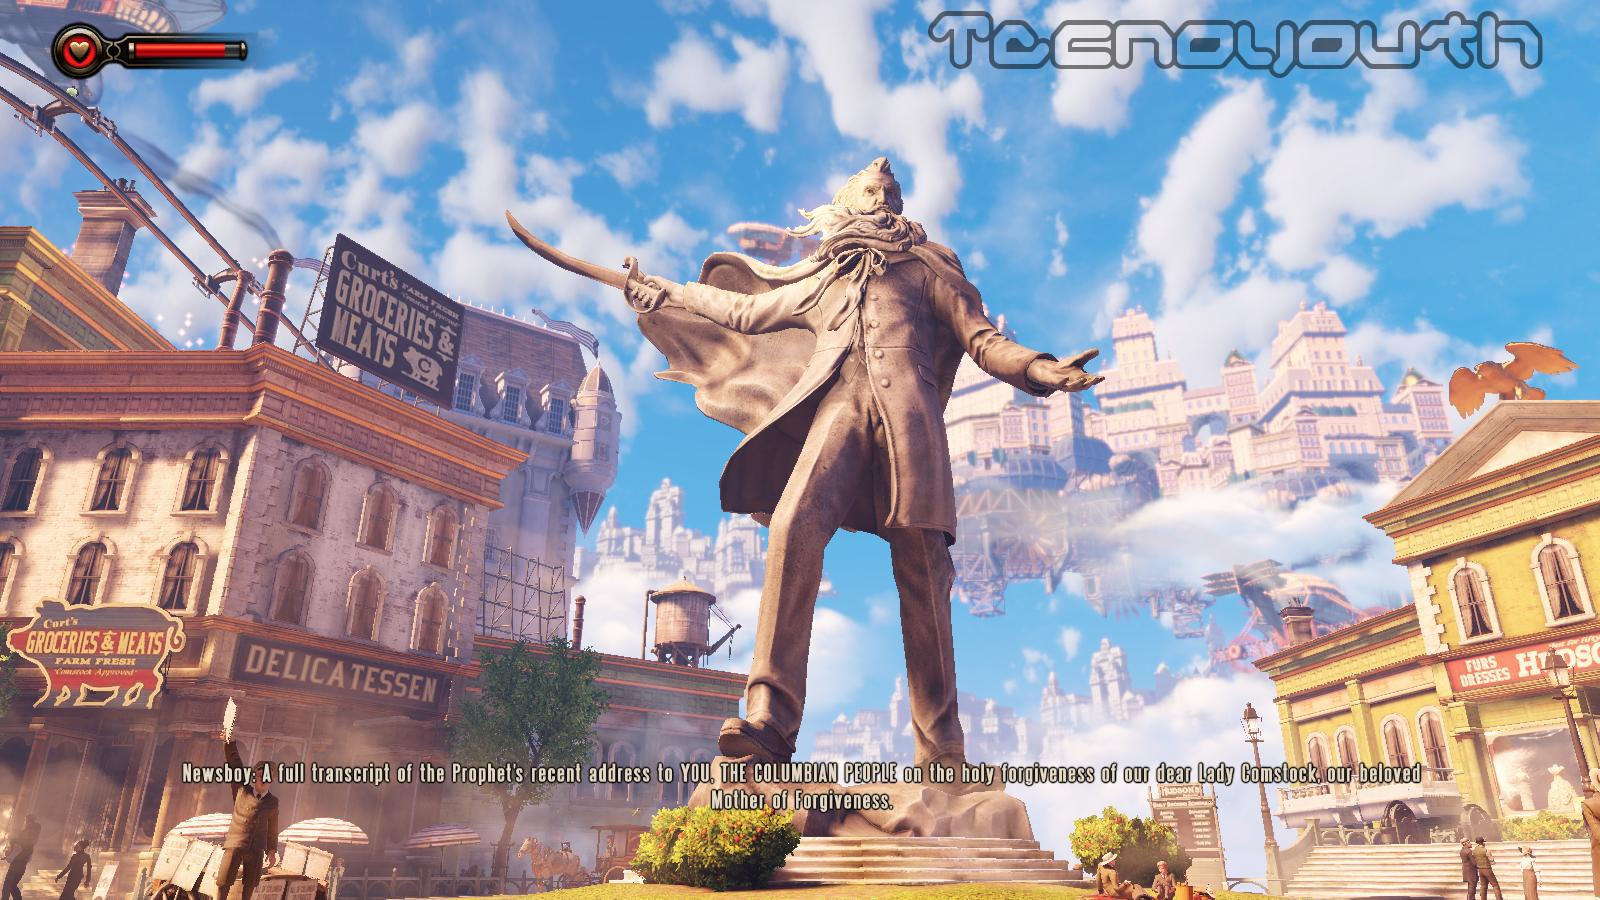 BioShock Infinite Gameplay 2